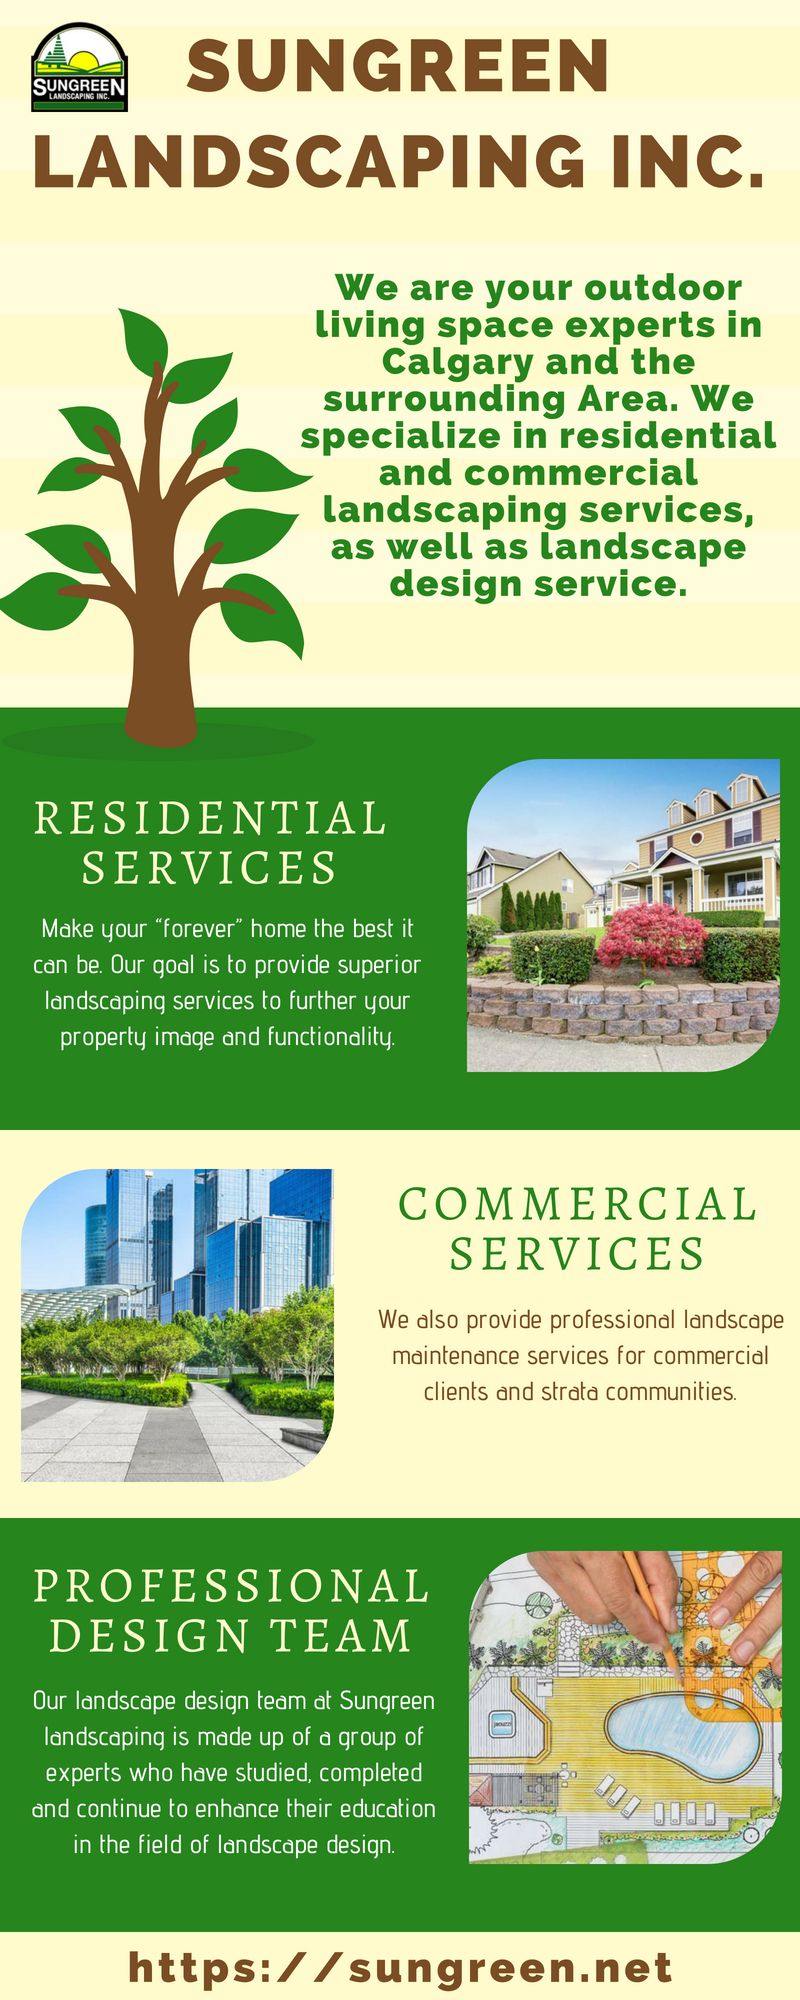 Sungreen Landscaping Company Offers Landscape Maintenance To